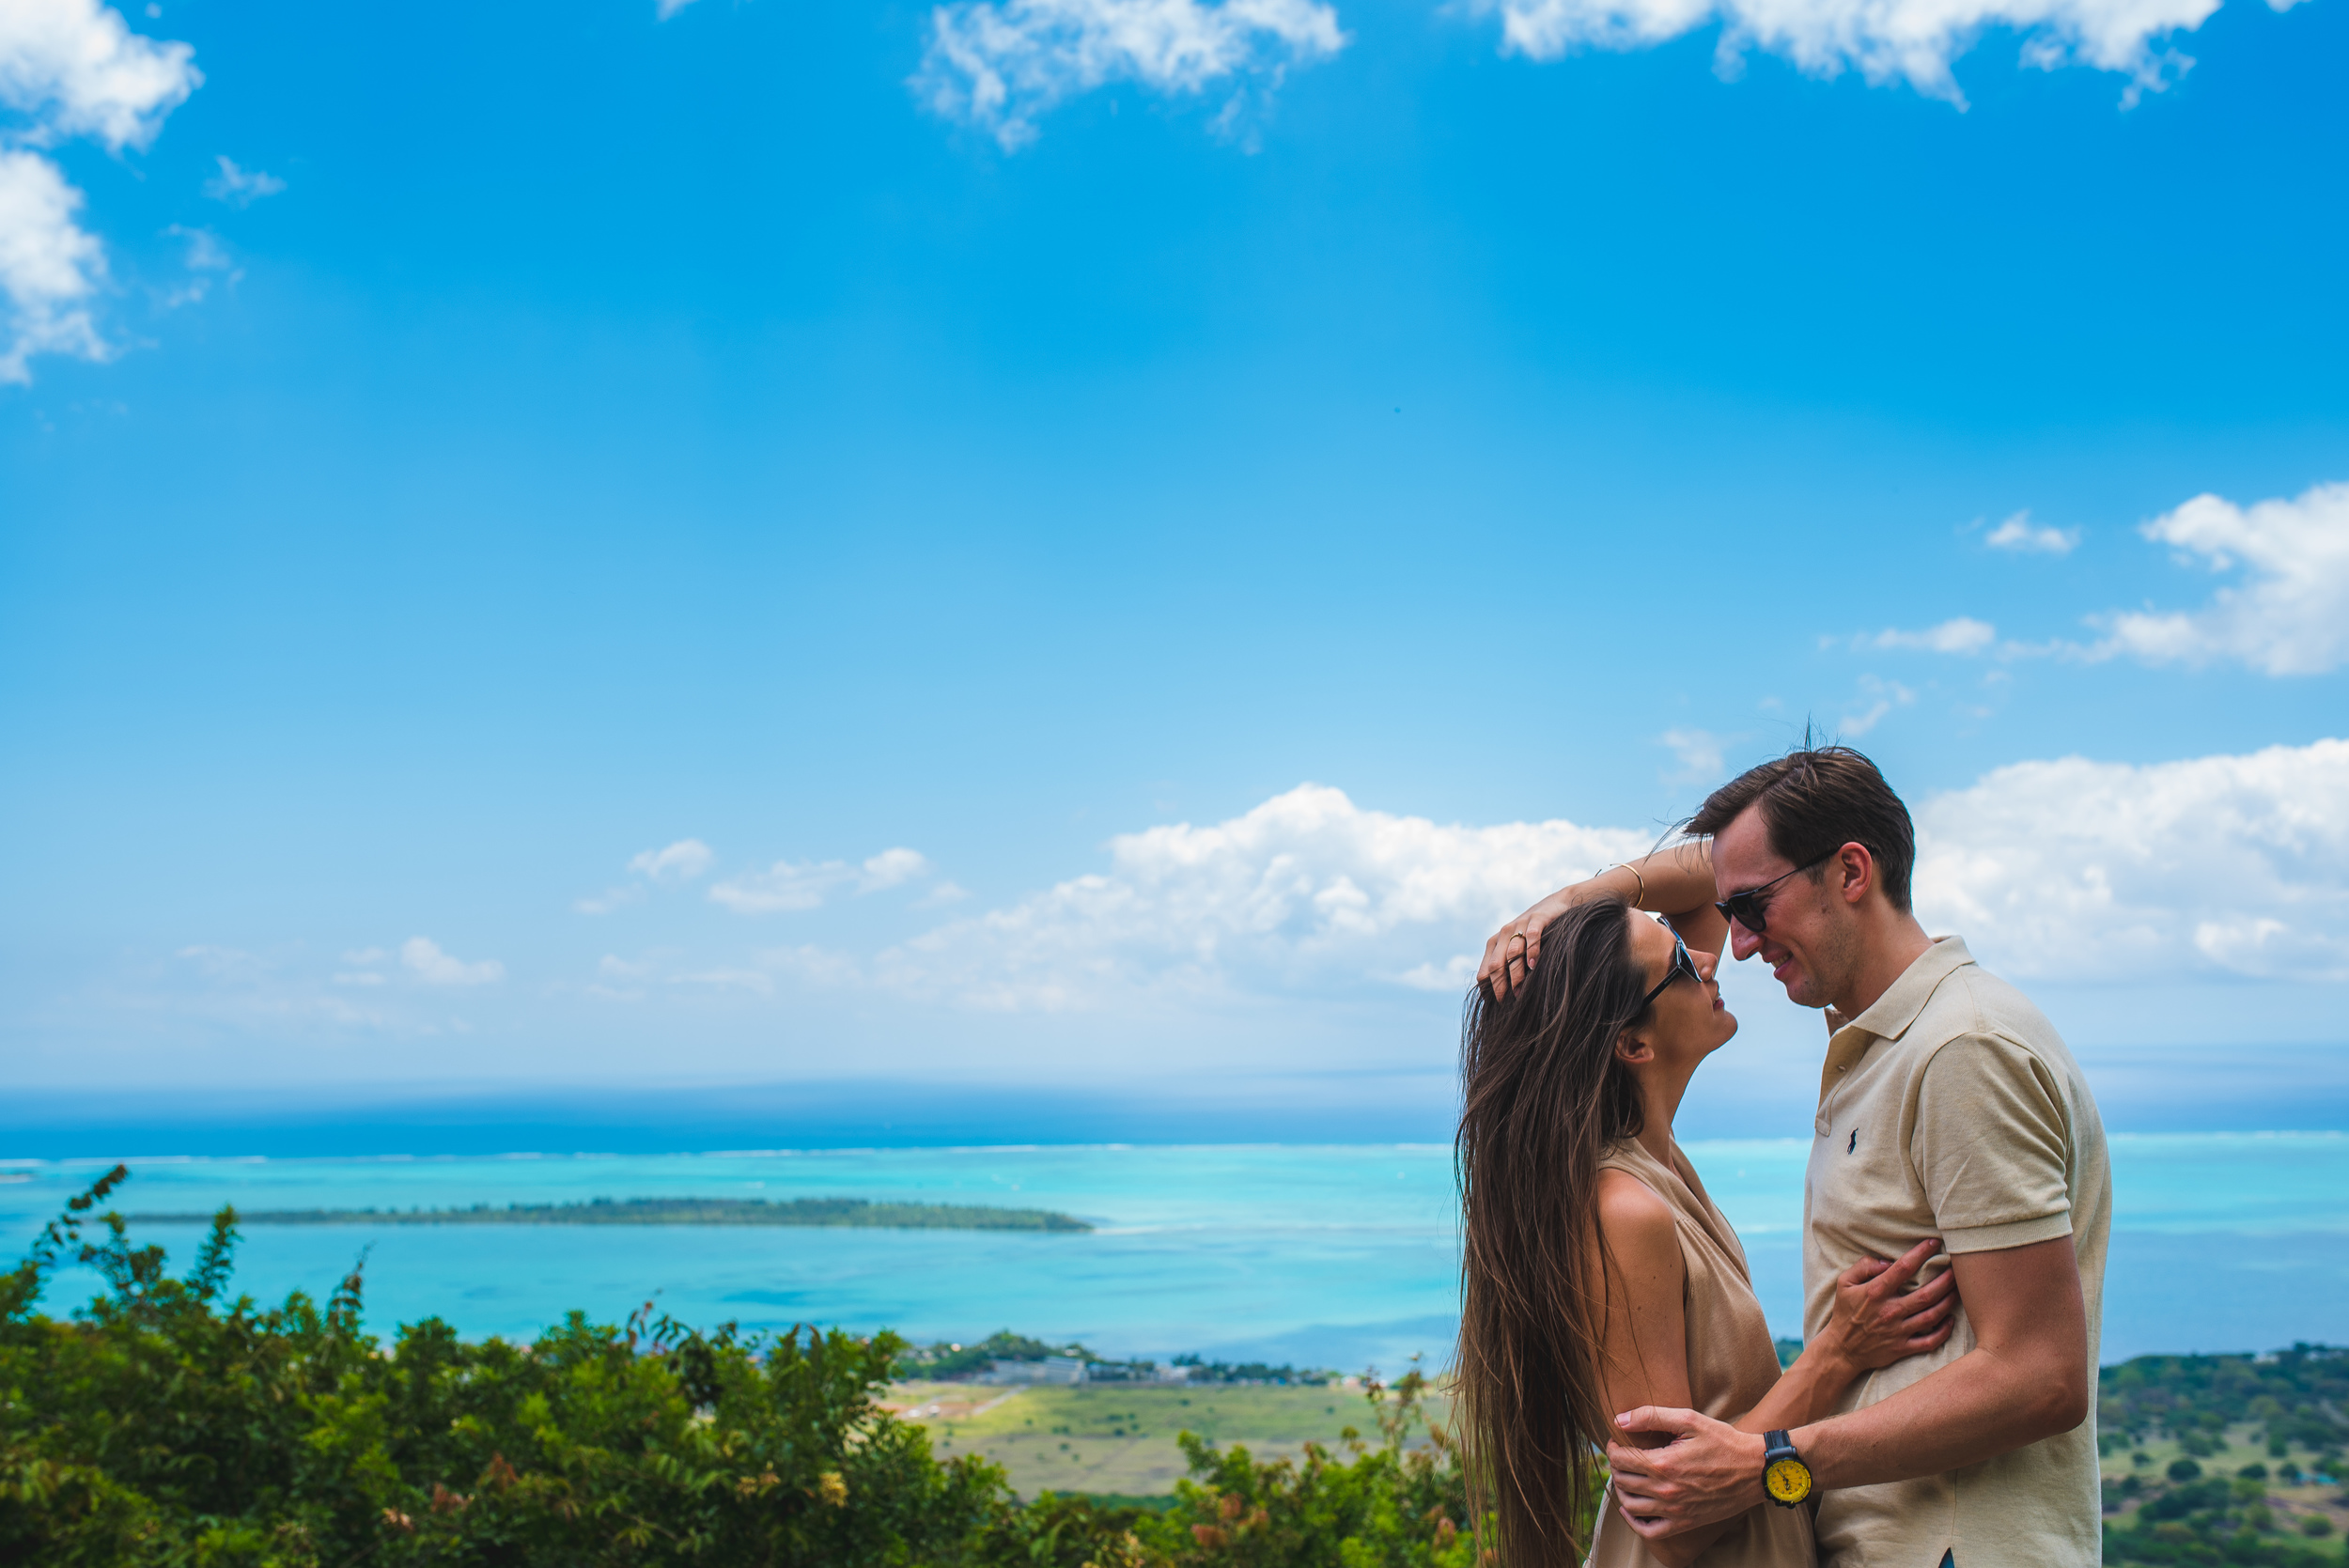 Mauritius Wedding Photographer Mantas Kubilinskas-12.jpg